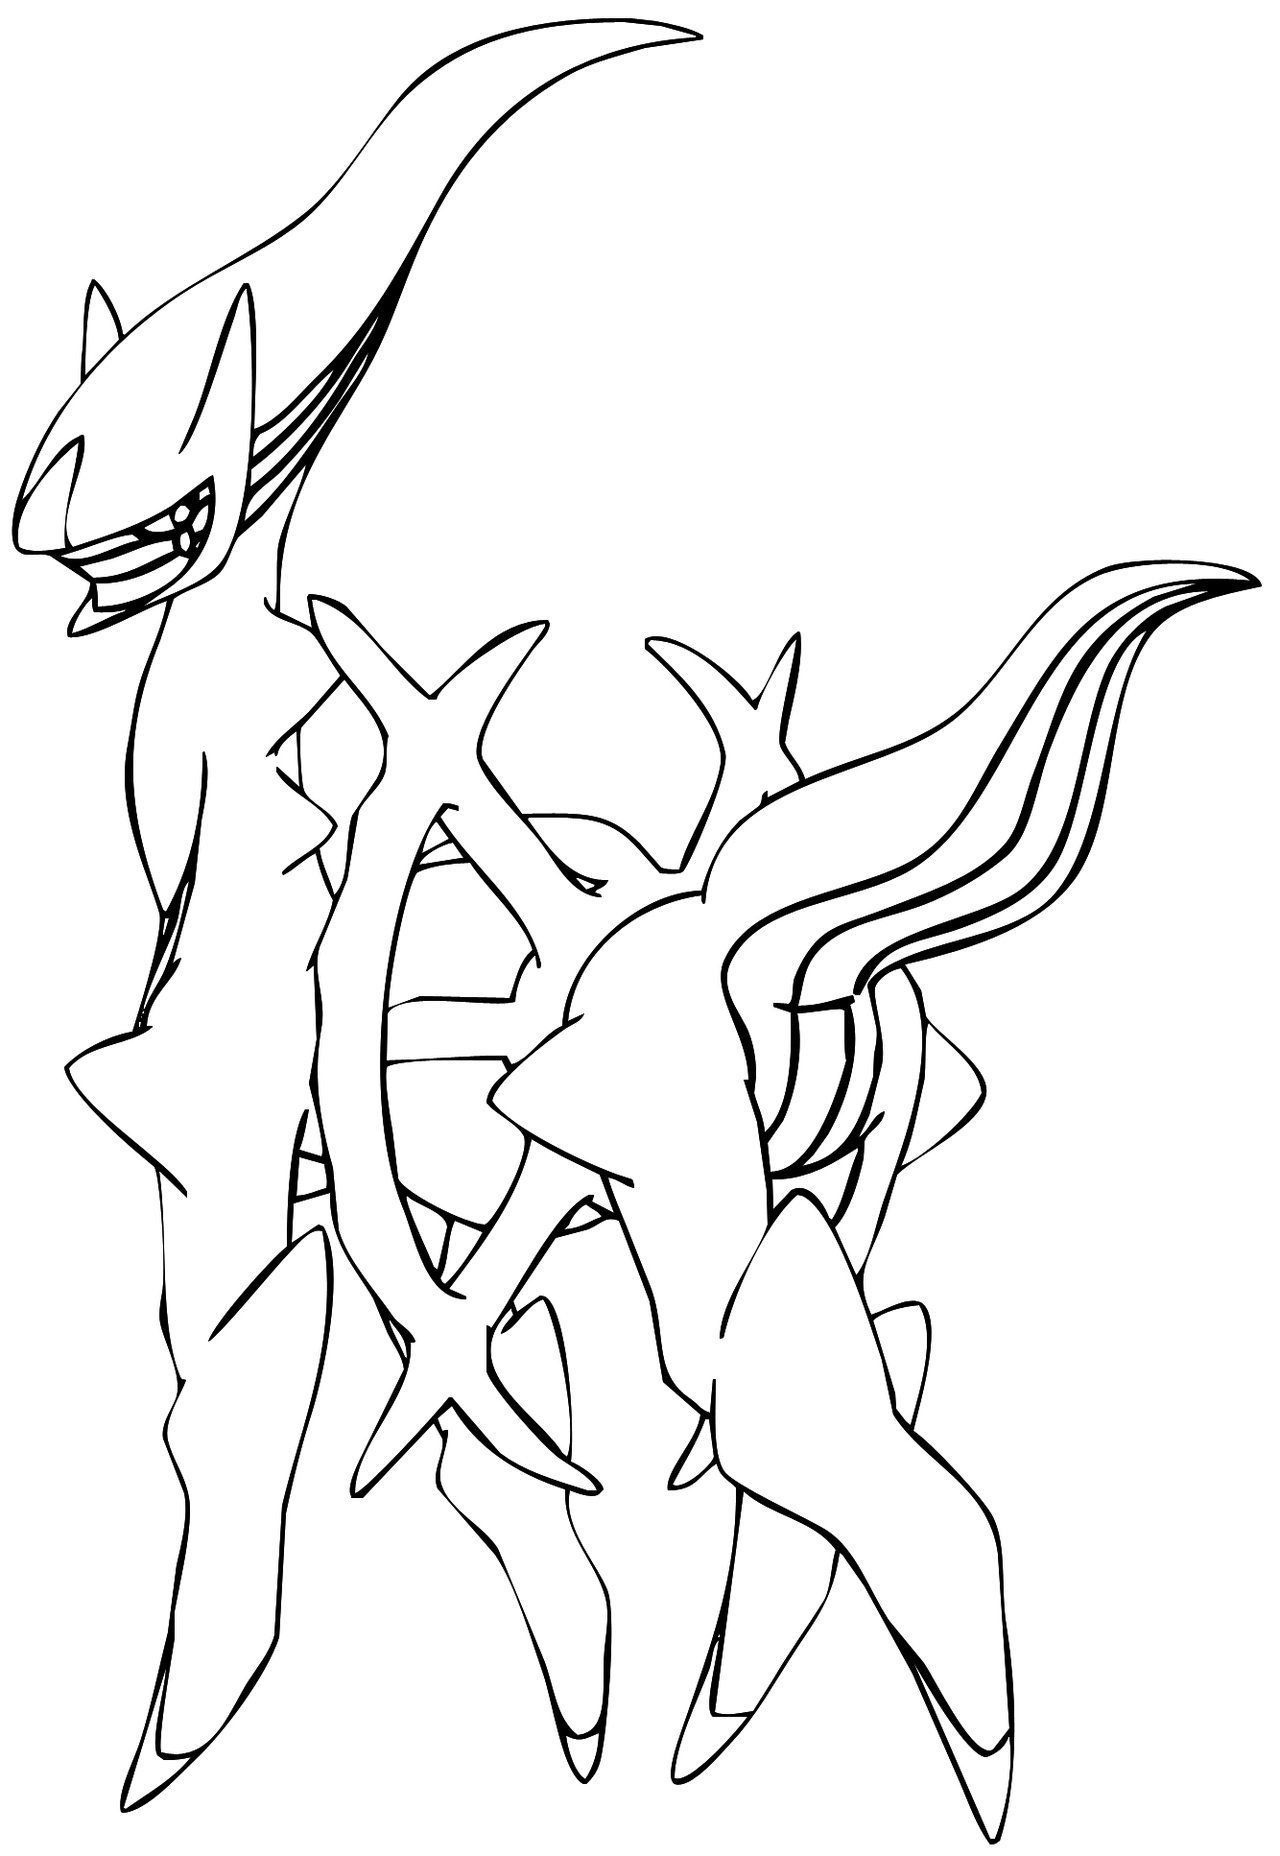 Chibi lugia coloring pages